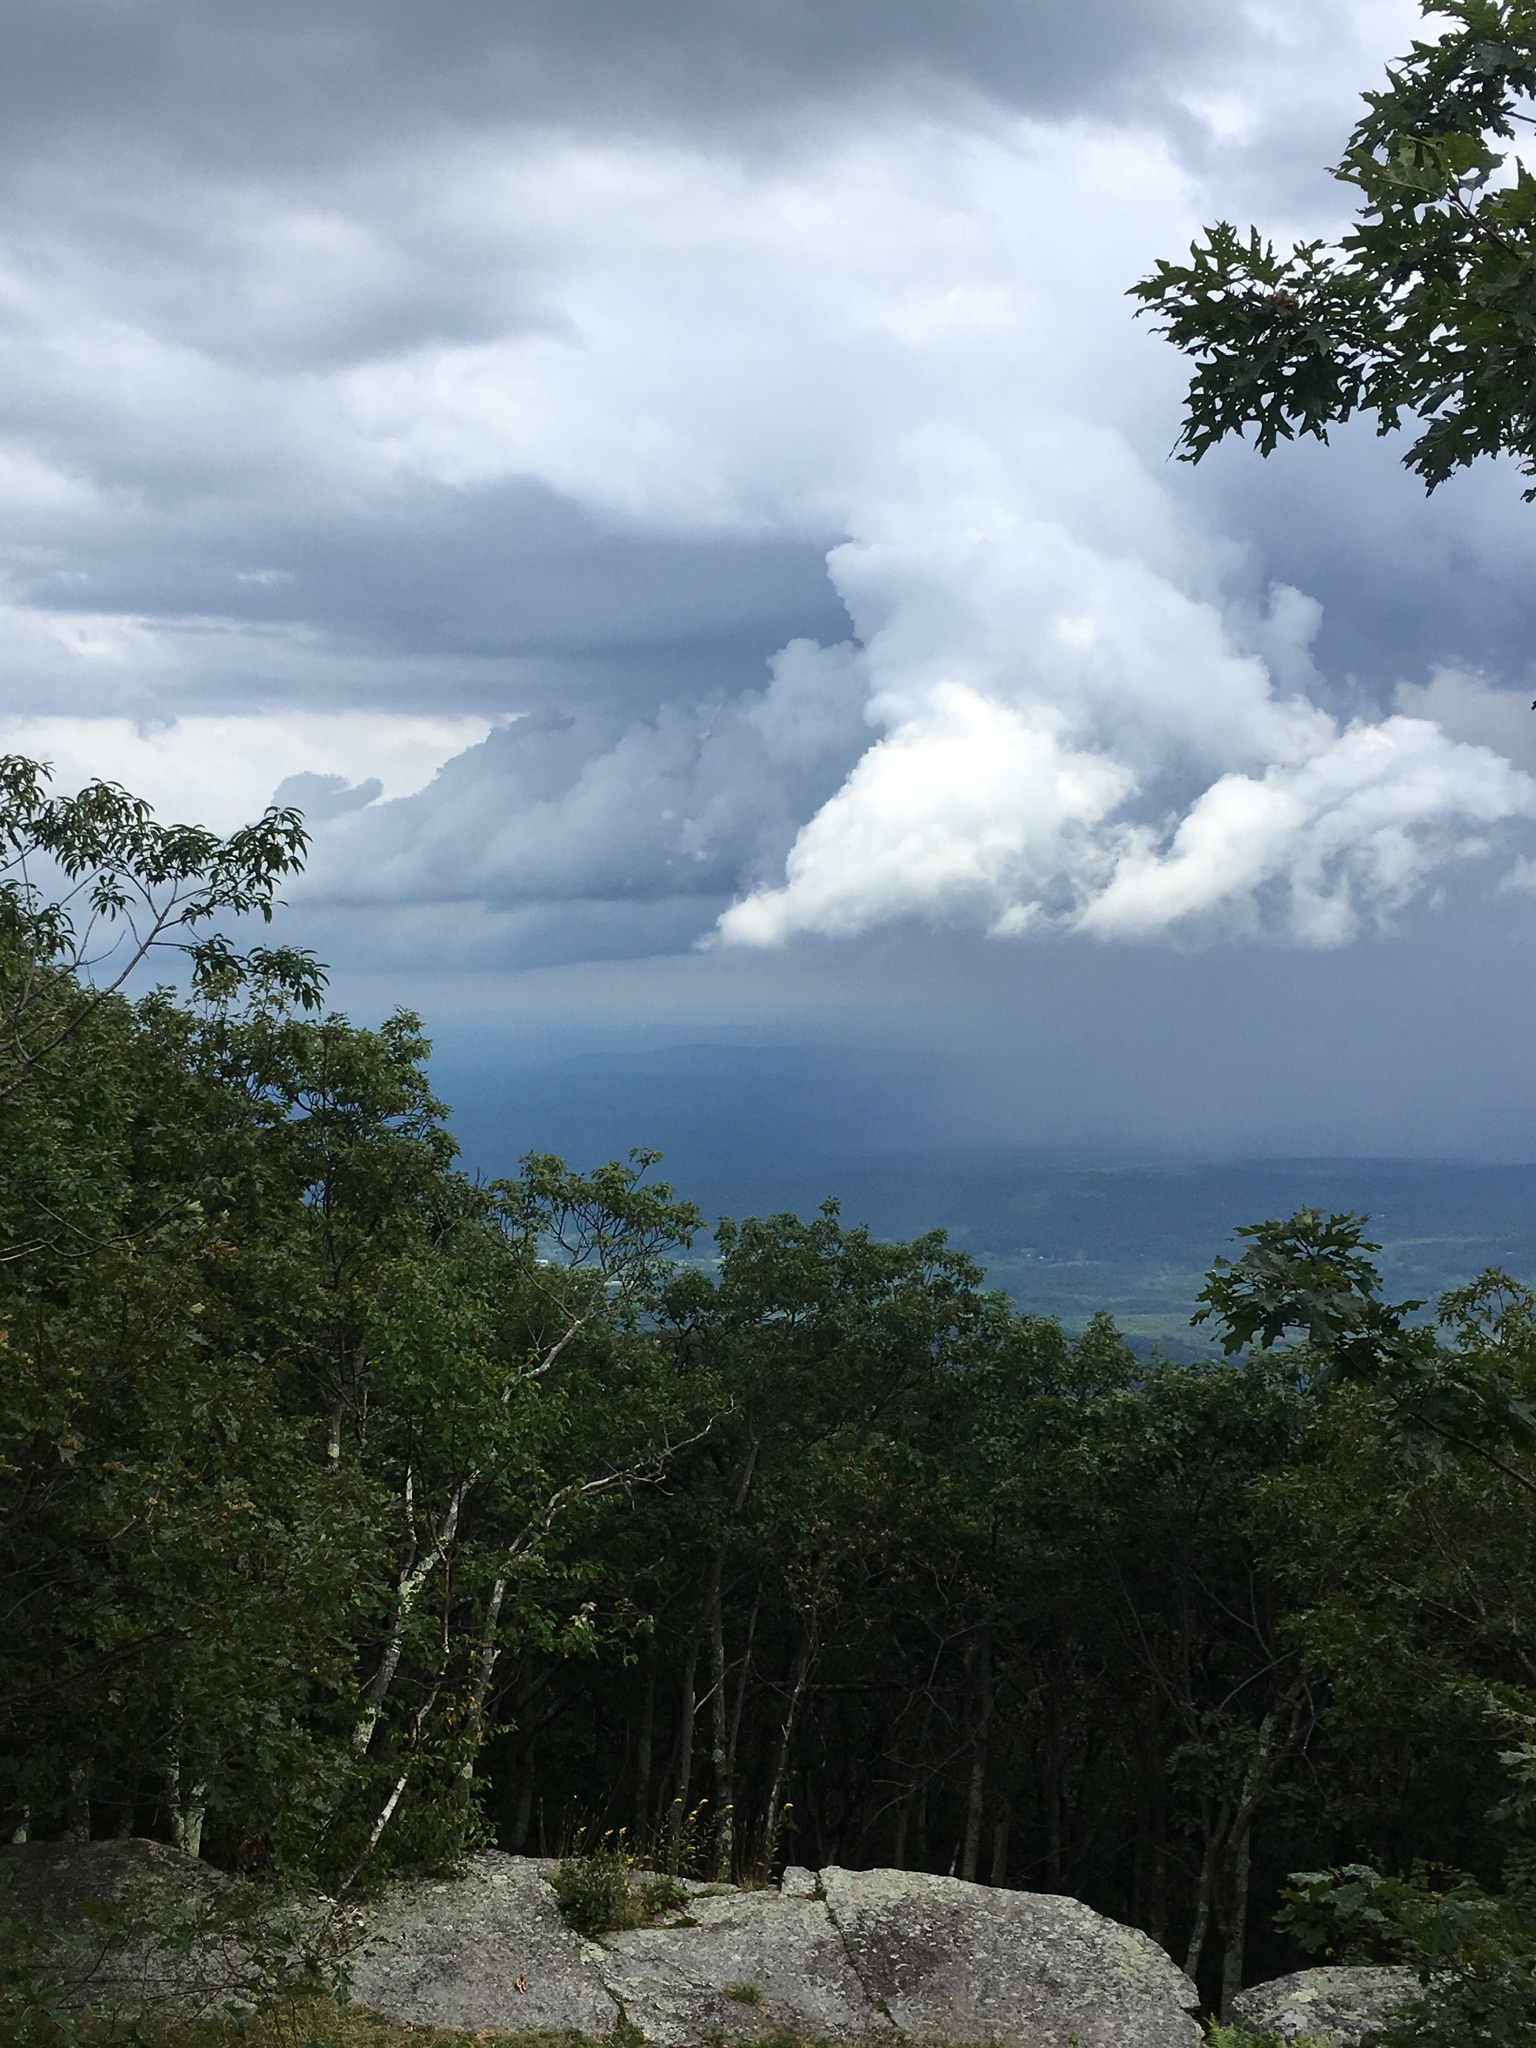 Even on sunny days, afternoon mountain weather can be unpredictable. Prepare to leave a summit or ridgeline in the event of an approaching storm.